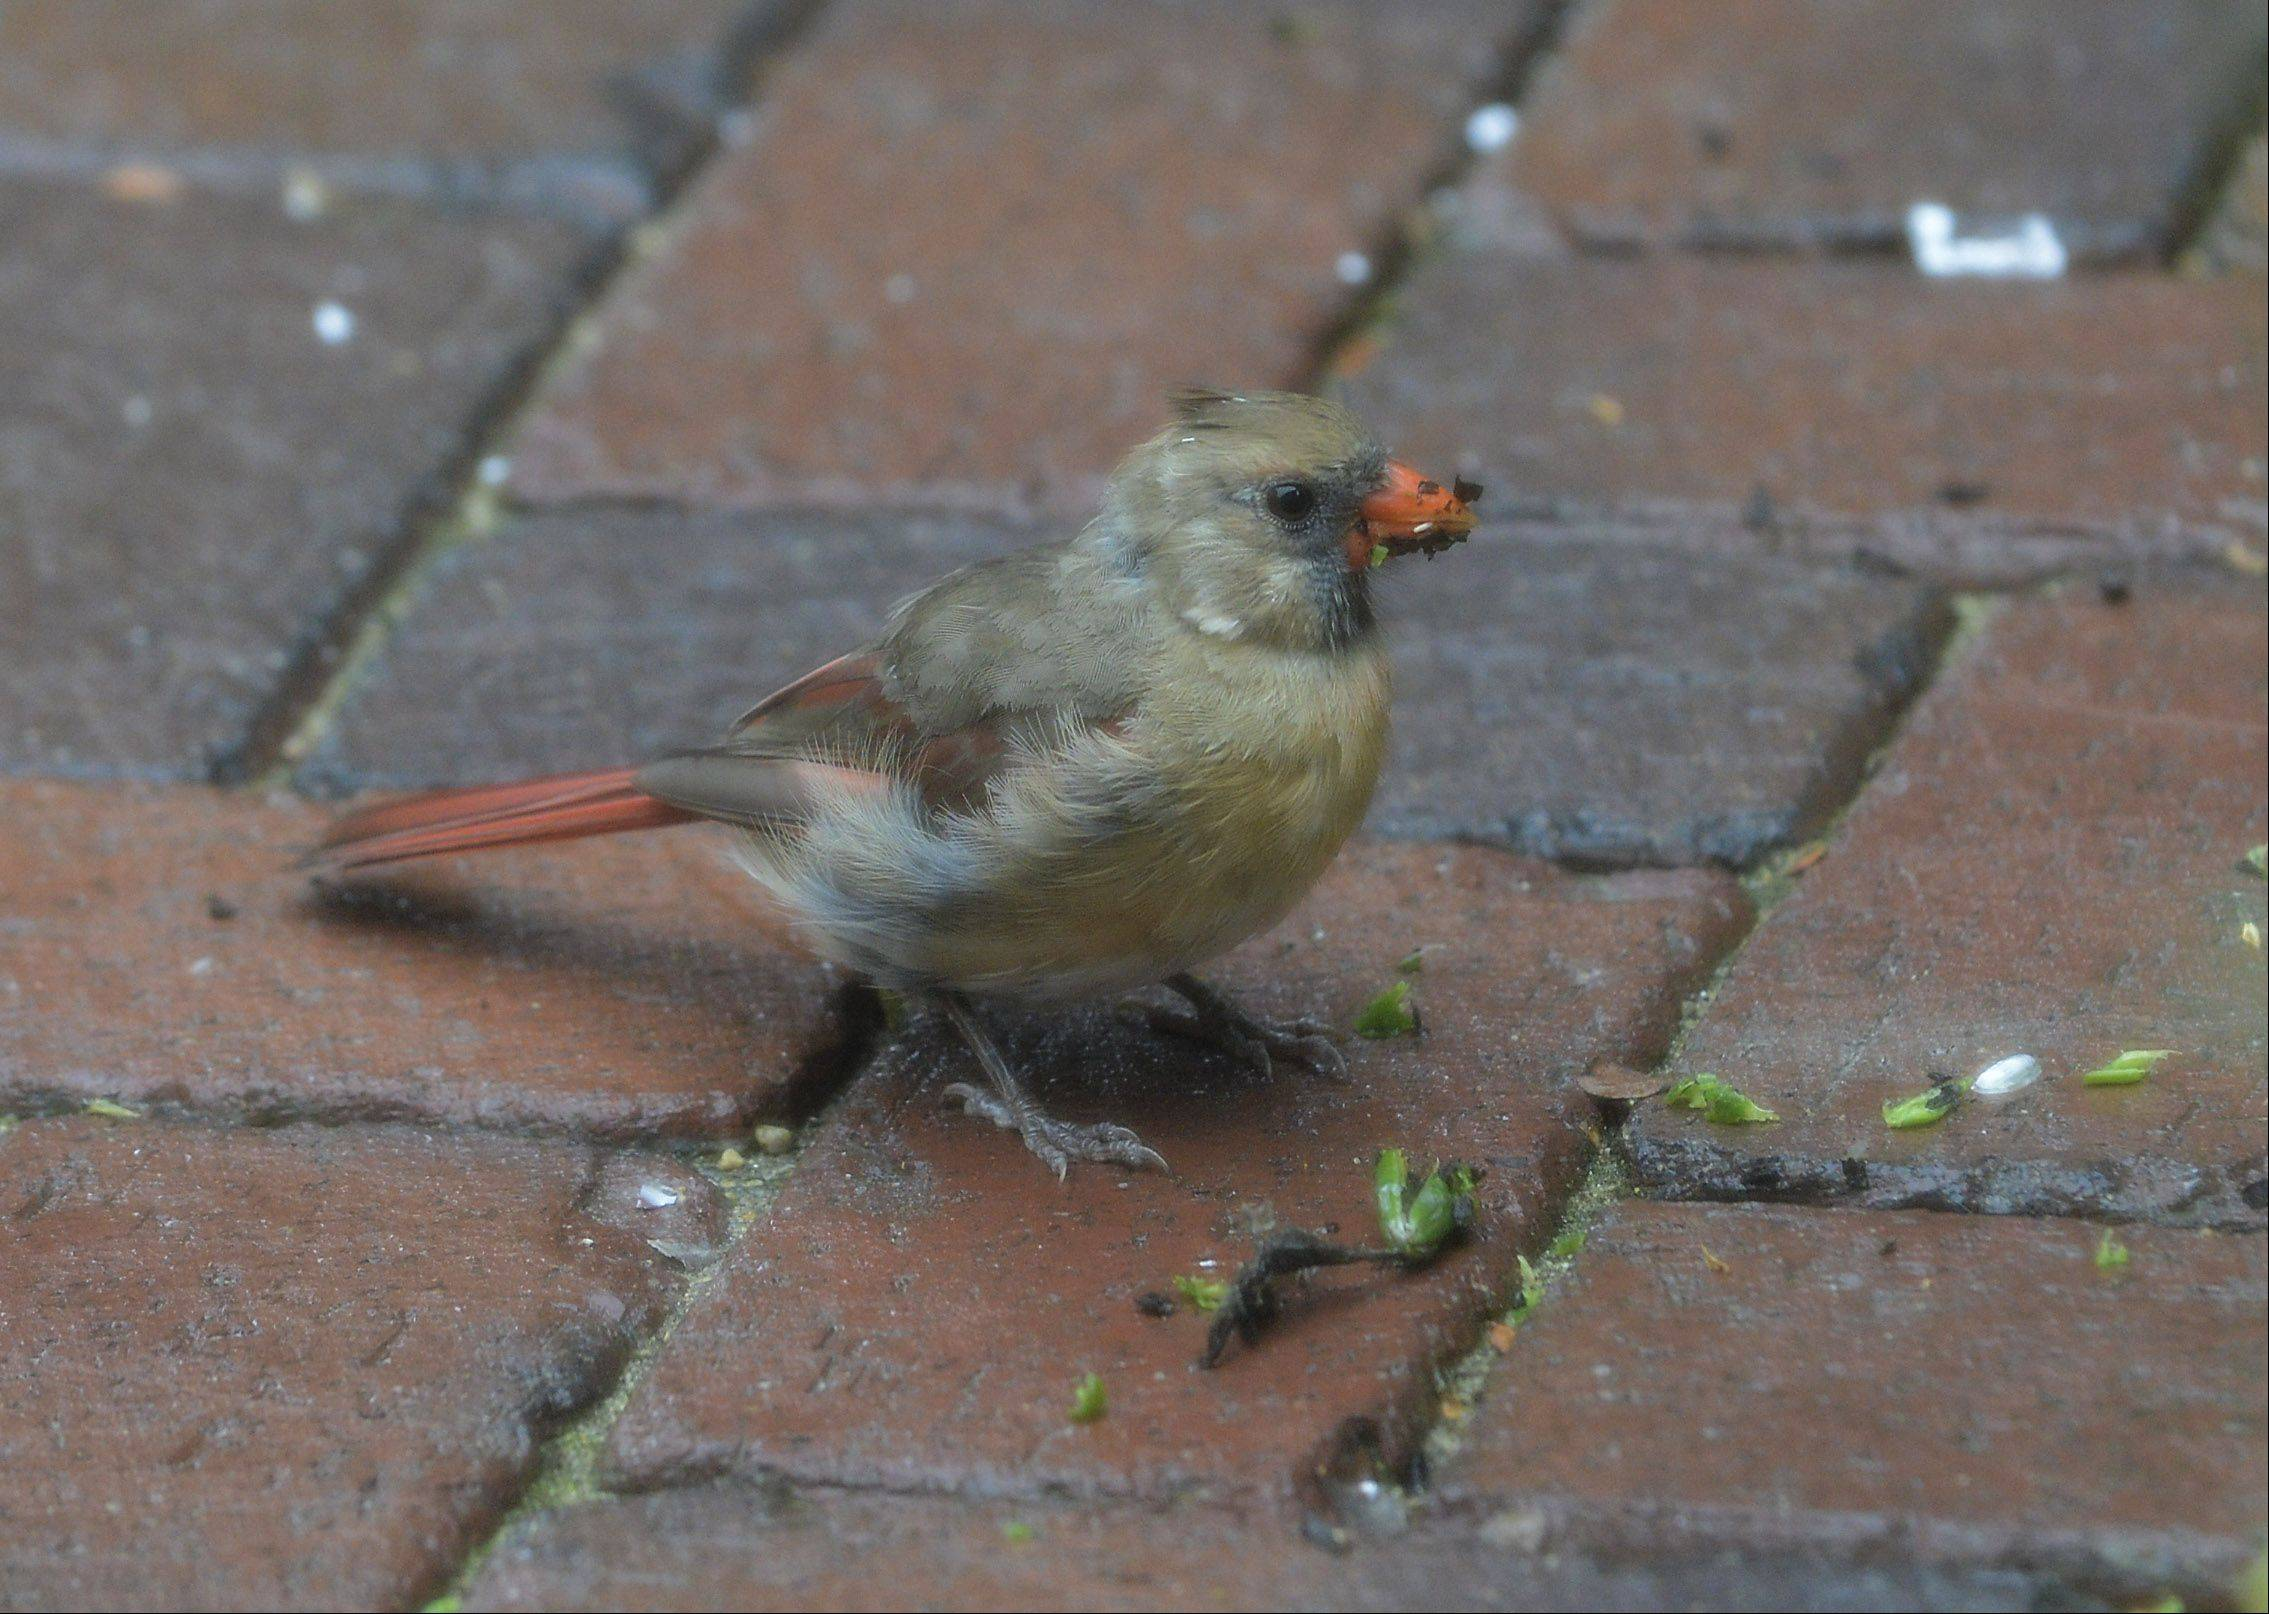 As summer turns to autumn, a young cardinal dines on a breakfast of seeds after landing on the patio of an Arlington Heights home. A sibling was nearby, and a male cardinal was watching over the birds while perched on the wall of the patio. This photo was published in the Perspective column in the print edtion.